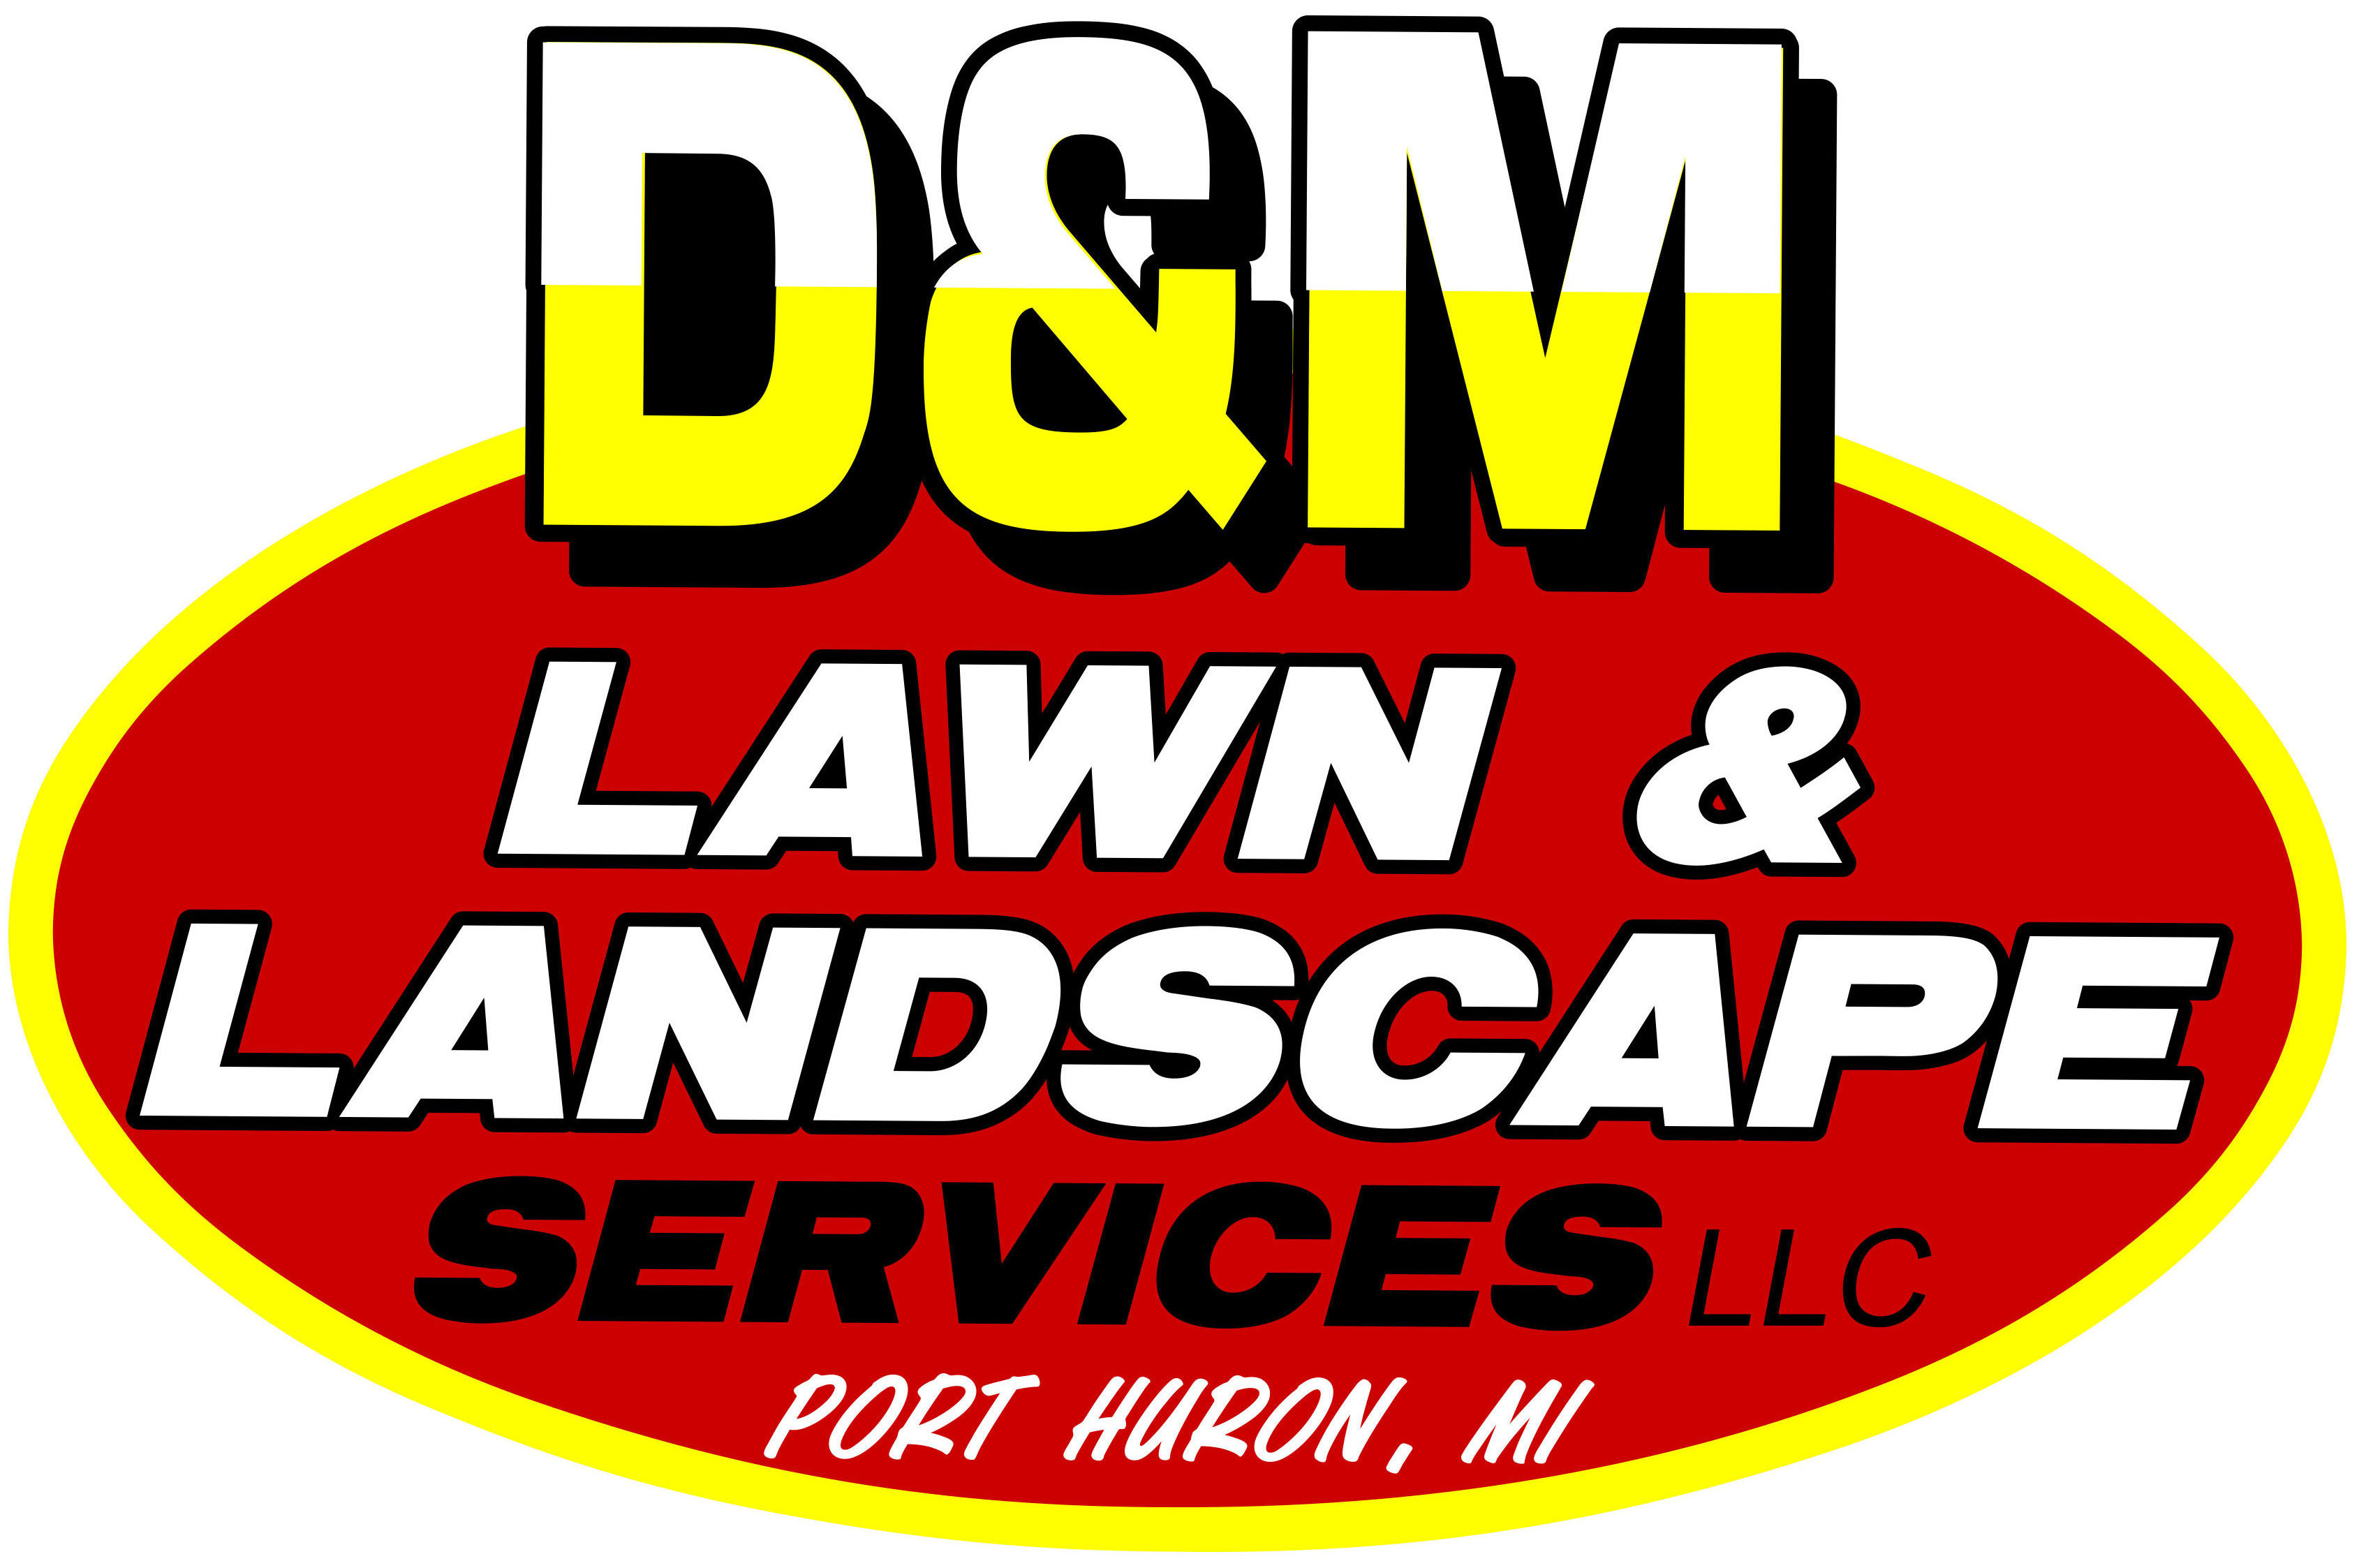 D&M Tree Service: Our Performance Speaks